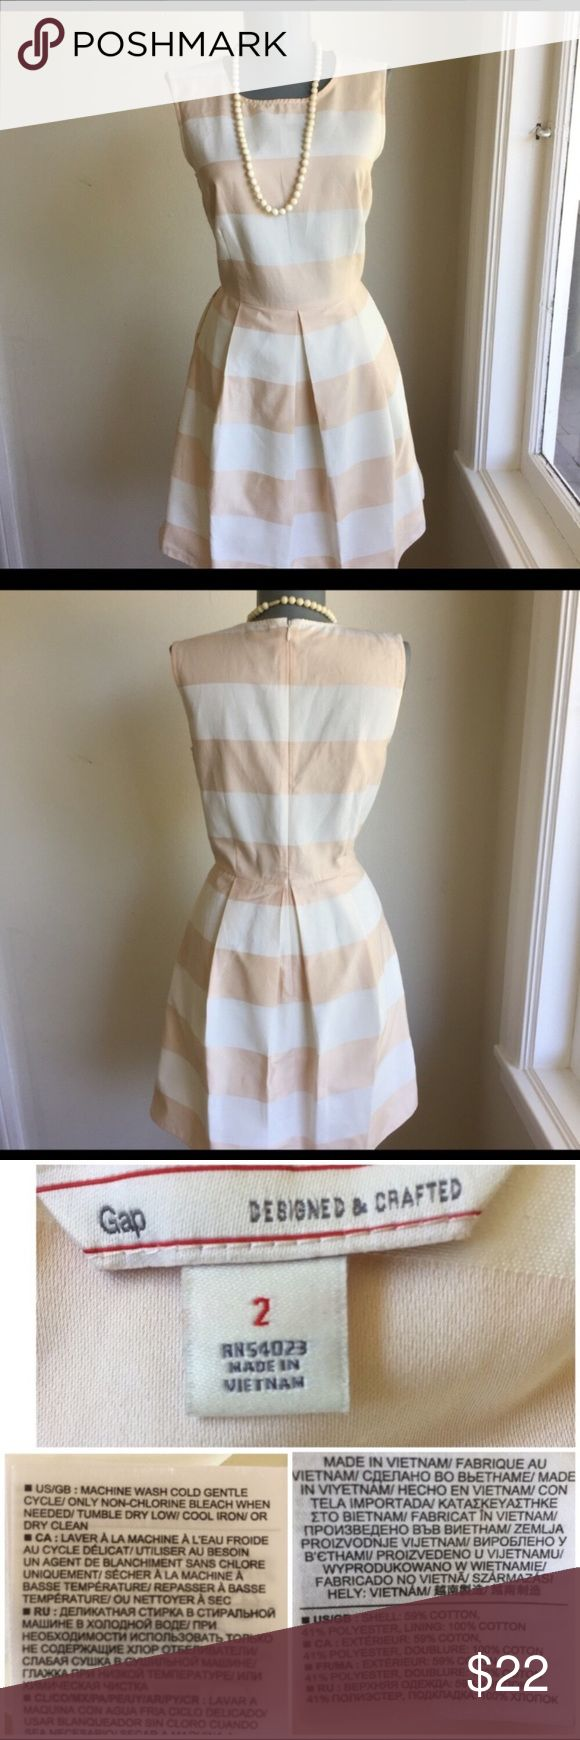 """Gap Light Peach and Off White Stripe Size 2 Dress. Gap Light Peach and Off White Stripe Size 2 Dress.  Fitted Top with 3 1/2"""" Pleats in Skirt for an Perfect Summer Look.  Flat lay measurements. Between underarms 17 1/2"""". Waist 14 3/4"""". Waist to hem 18"""". Very good condition.  So Pretty.  •••••This is a FIRM PRICE•••••••• GAP Dresses Mini"""